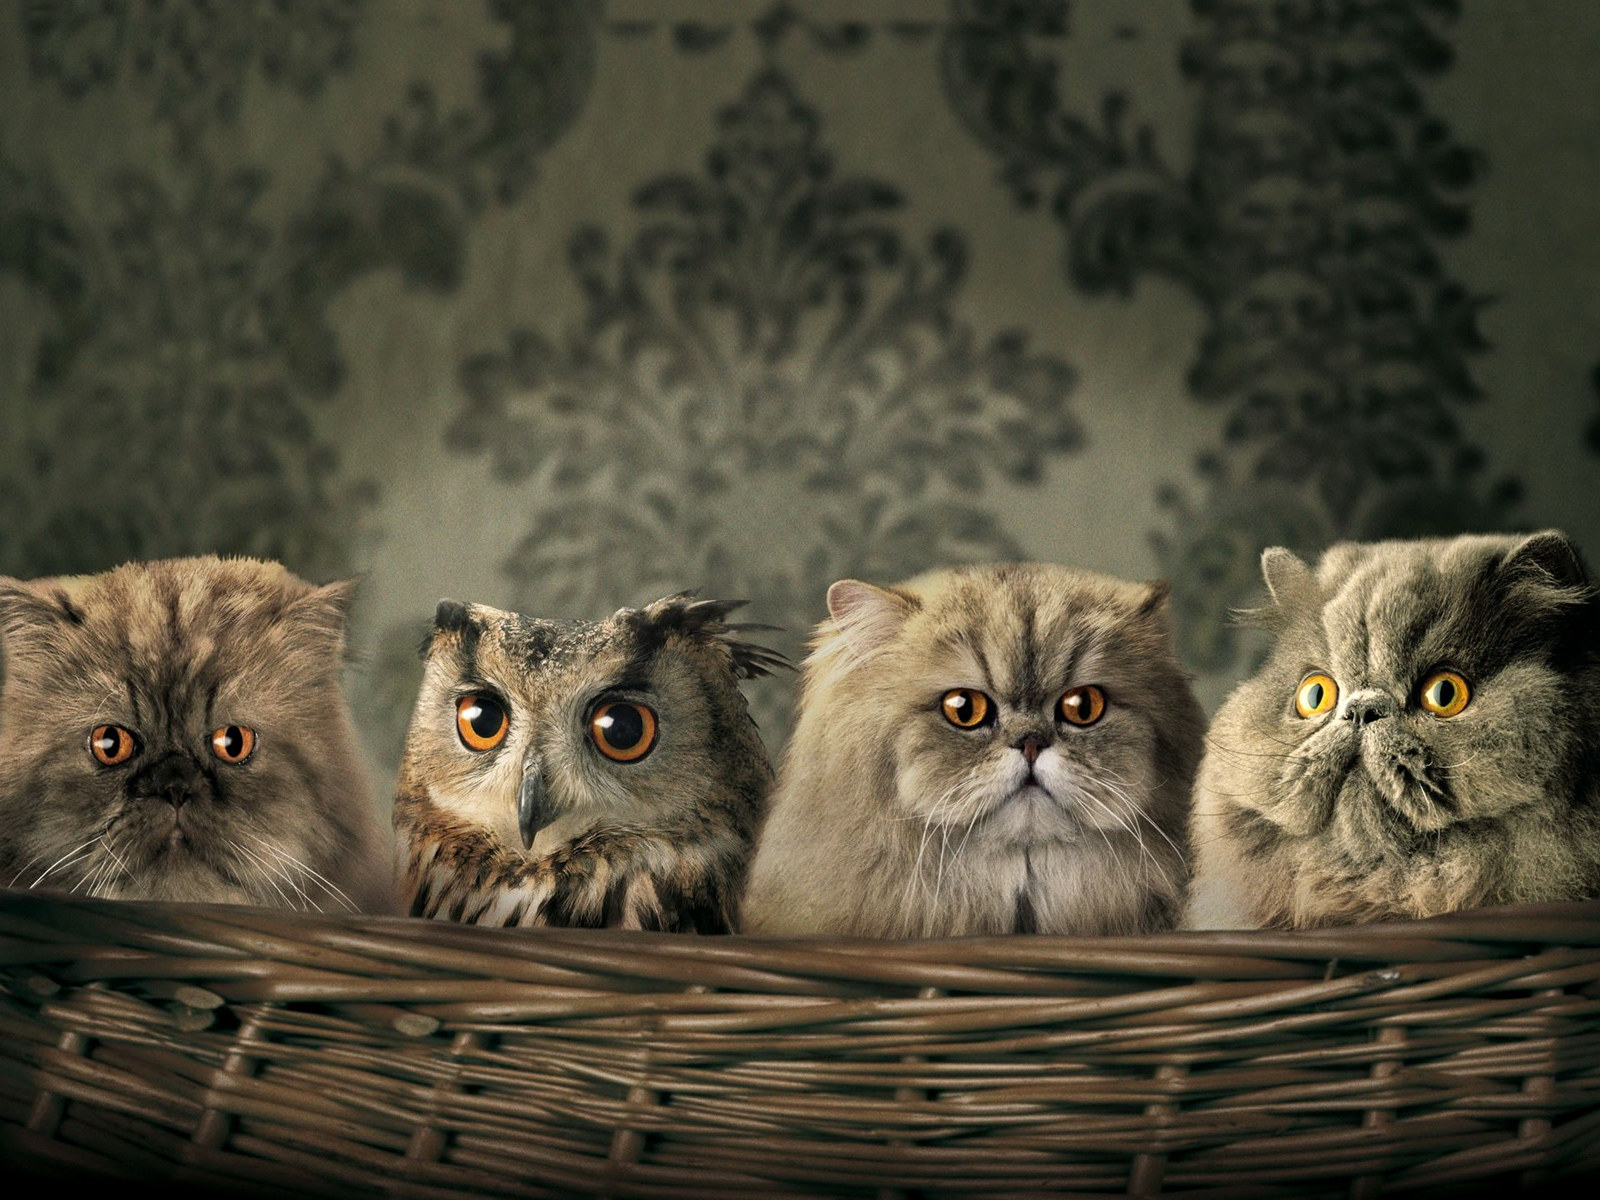 Owlet of kittens